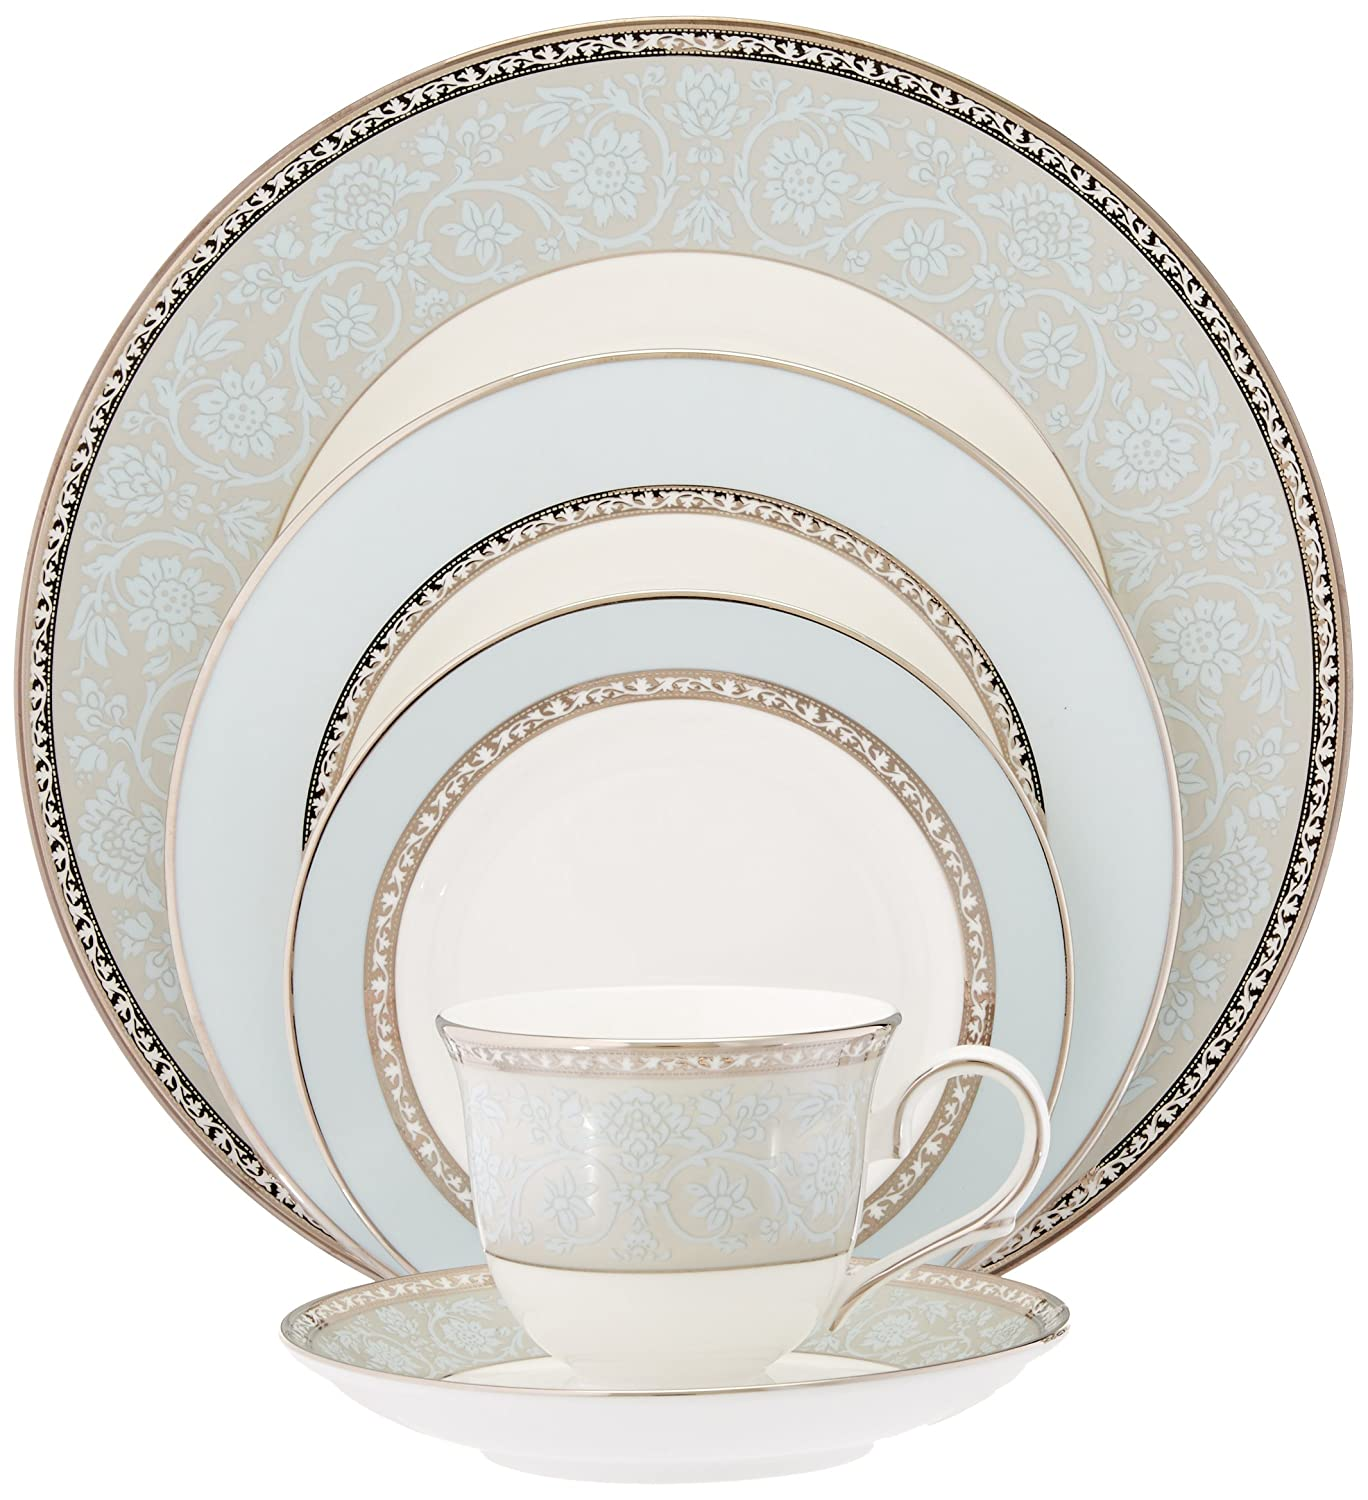 Lenox Westmore Fine Bone China 5-Piece Place Setting